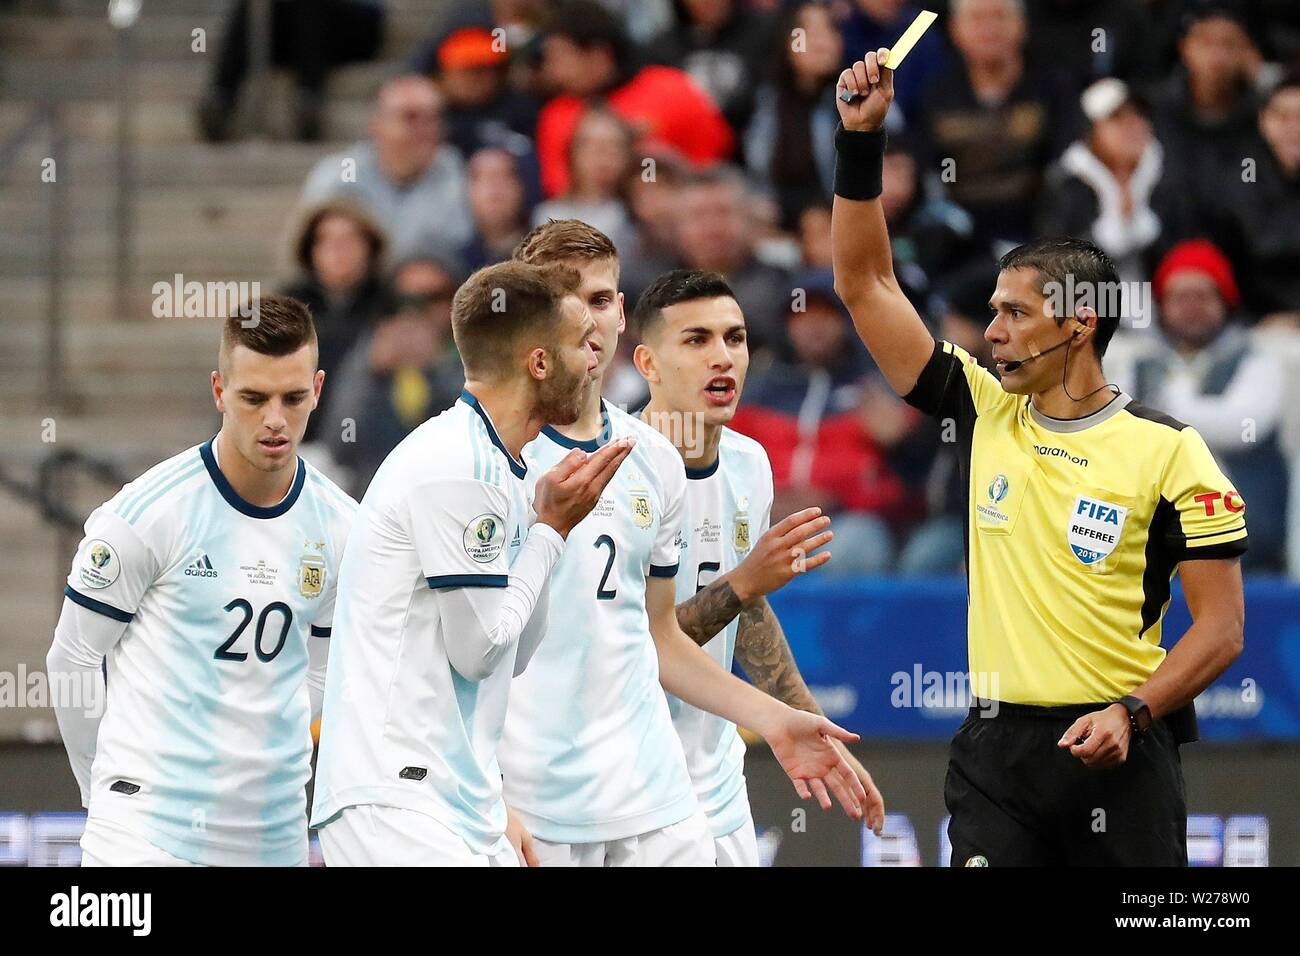 Sao Paulo, Brazil. 06th July, 2019. Argentinian players argue with the referee as he shows a yellow card, during the Copa America 2019 3rd place soccer match between Argentina and Chile, at Arena Corinthians Stadium in Sao Paulo, Brazil, 6 July 2019. Credit: Sebastiao Moreira/EFE/Alamy Live News Stock Photo